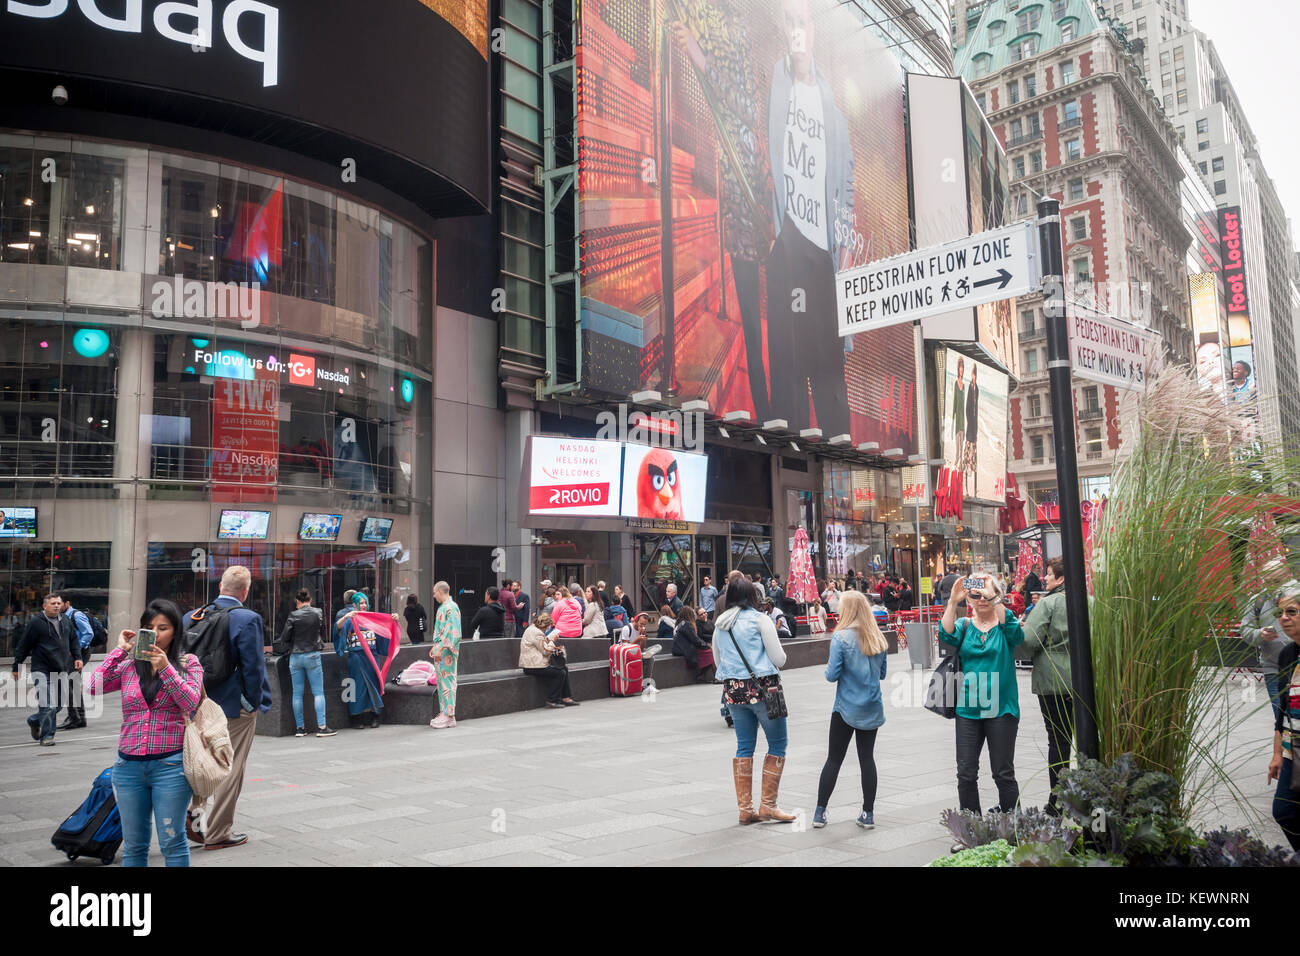 At the fitbit ipo celebration at new york stock exchange on thursday - The Video Screen Of The Nasdaq Exchange In New York Displays A Welcome For The Game